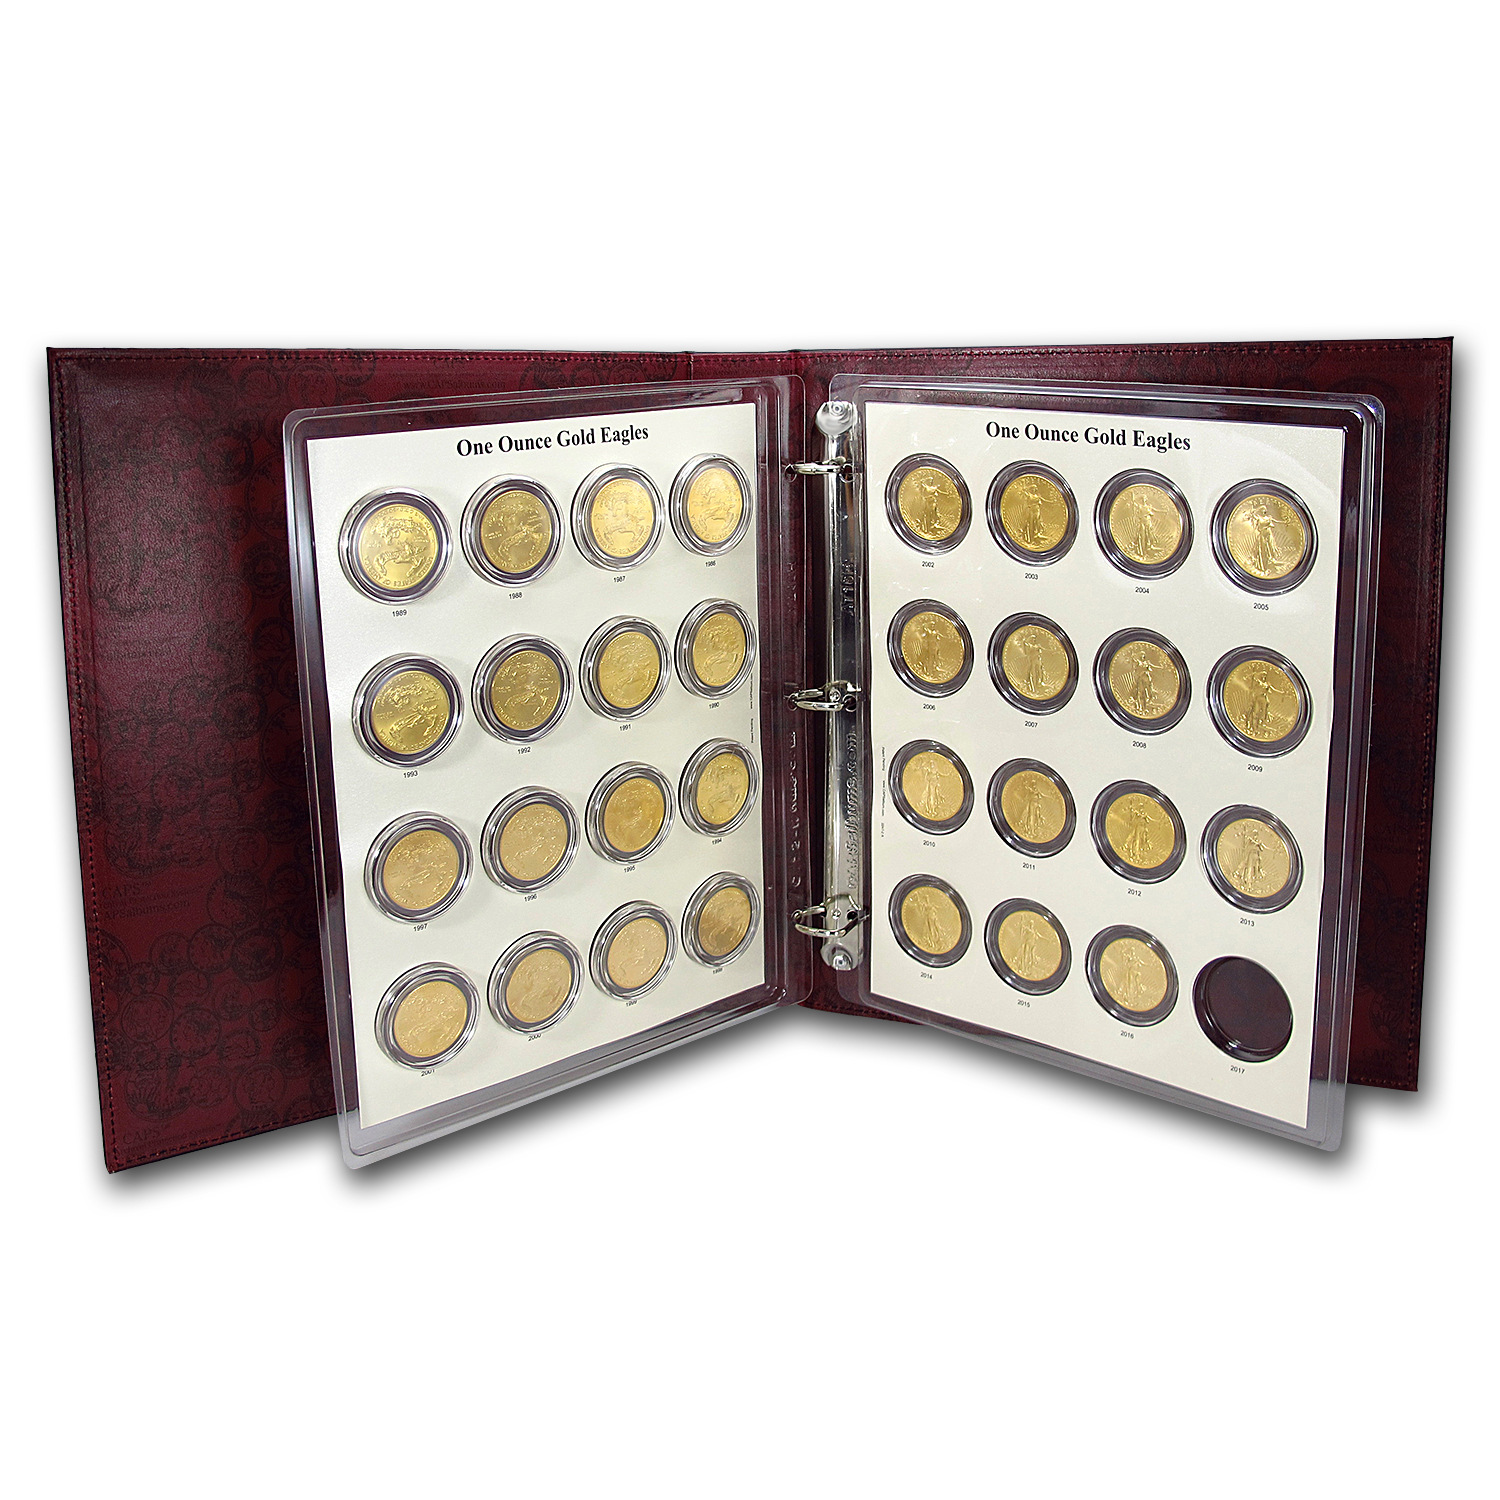 1986-2016 31-Coin 1 oz Gold Eagle Set BU (CAPS Album)